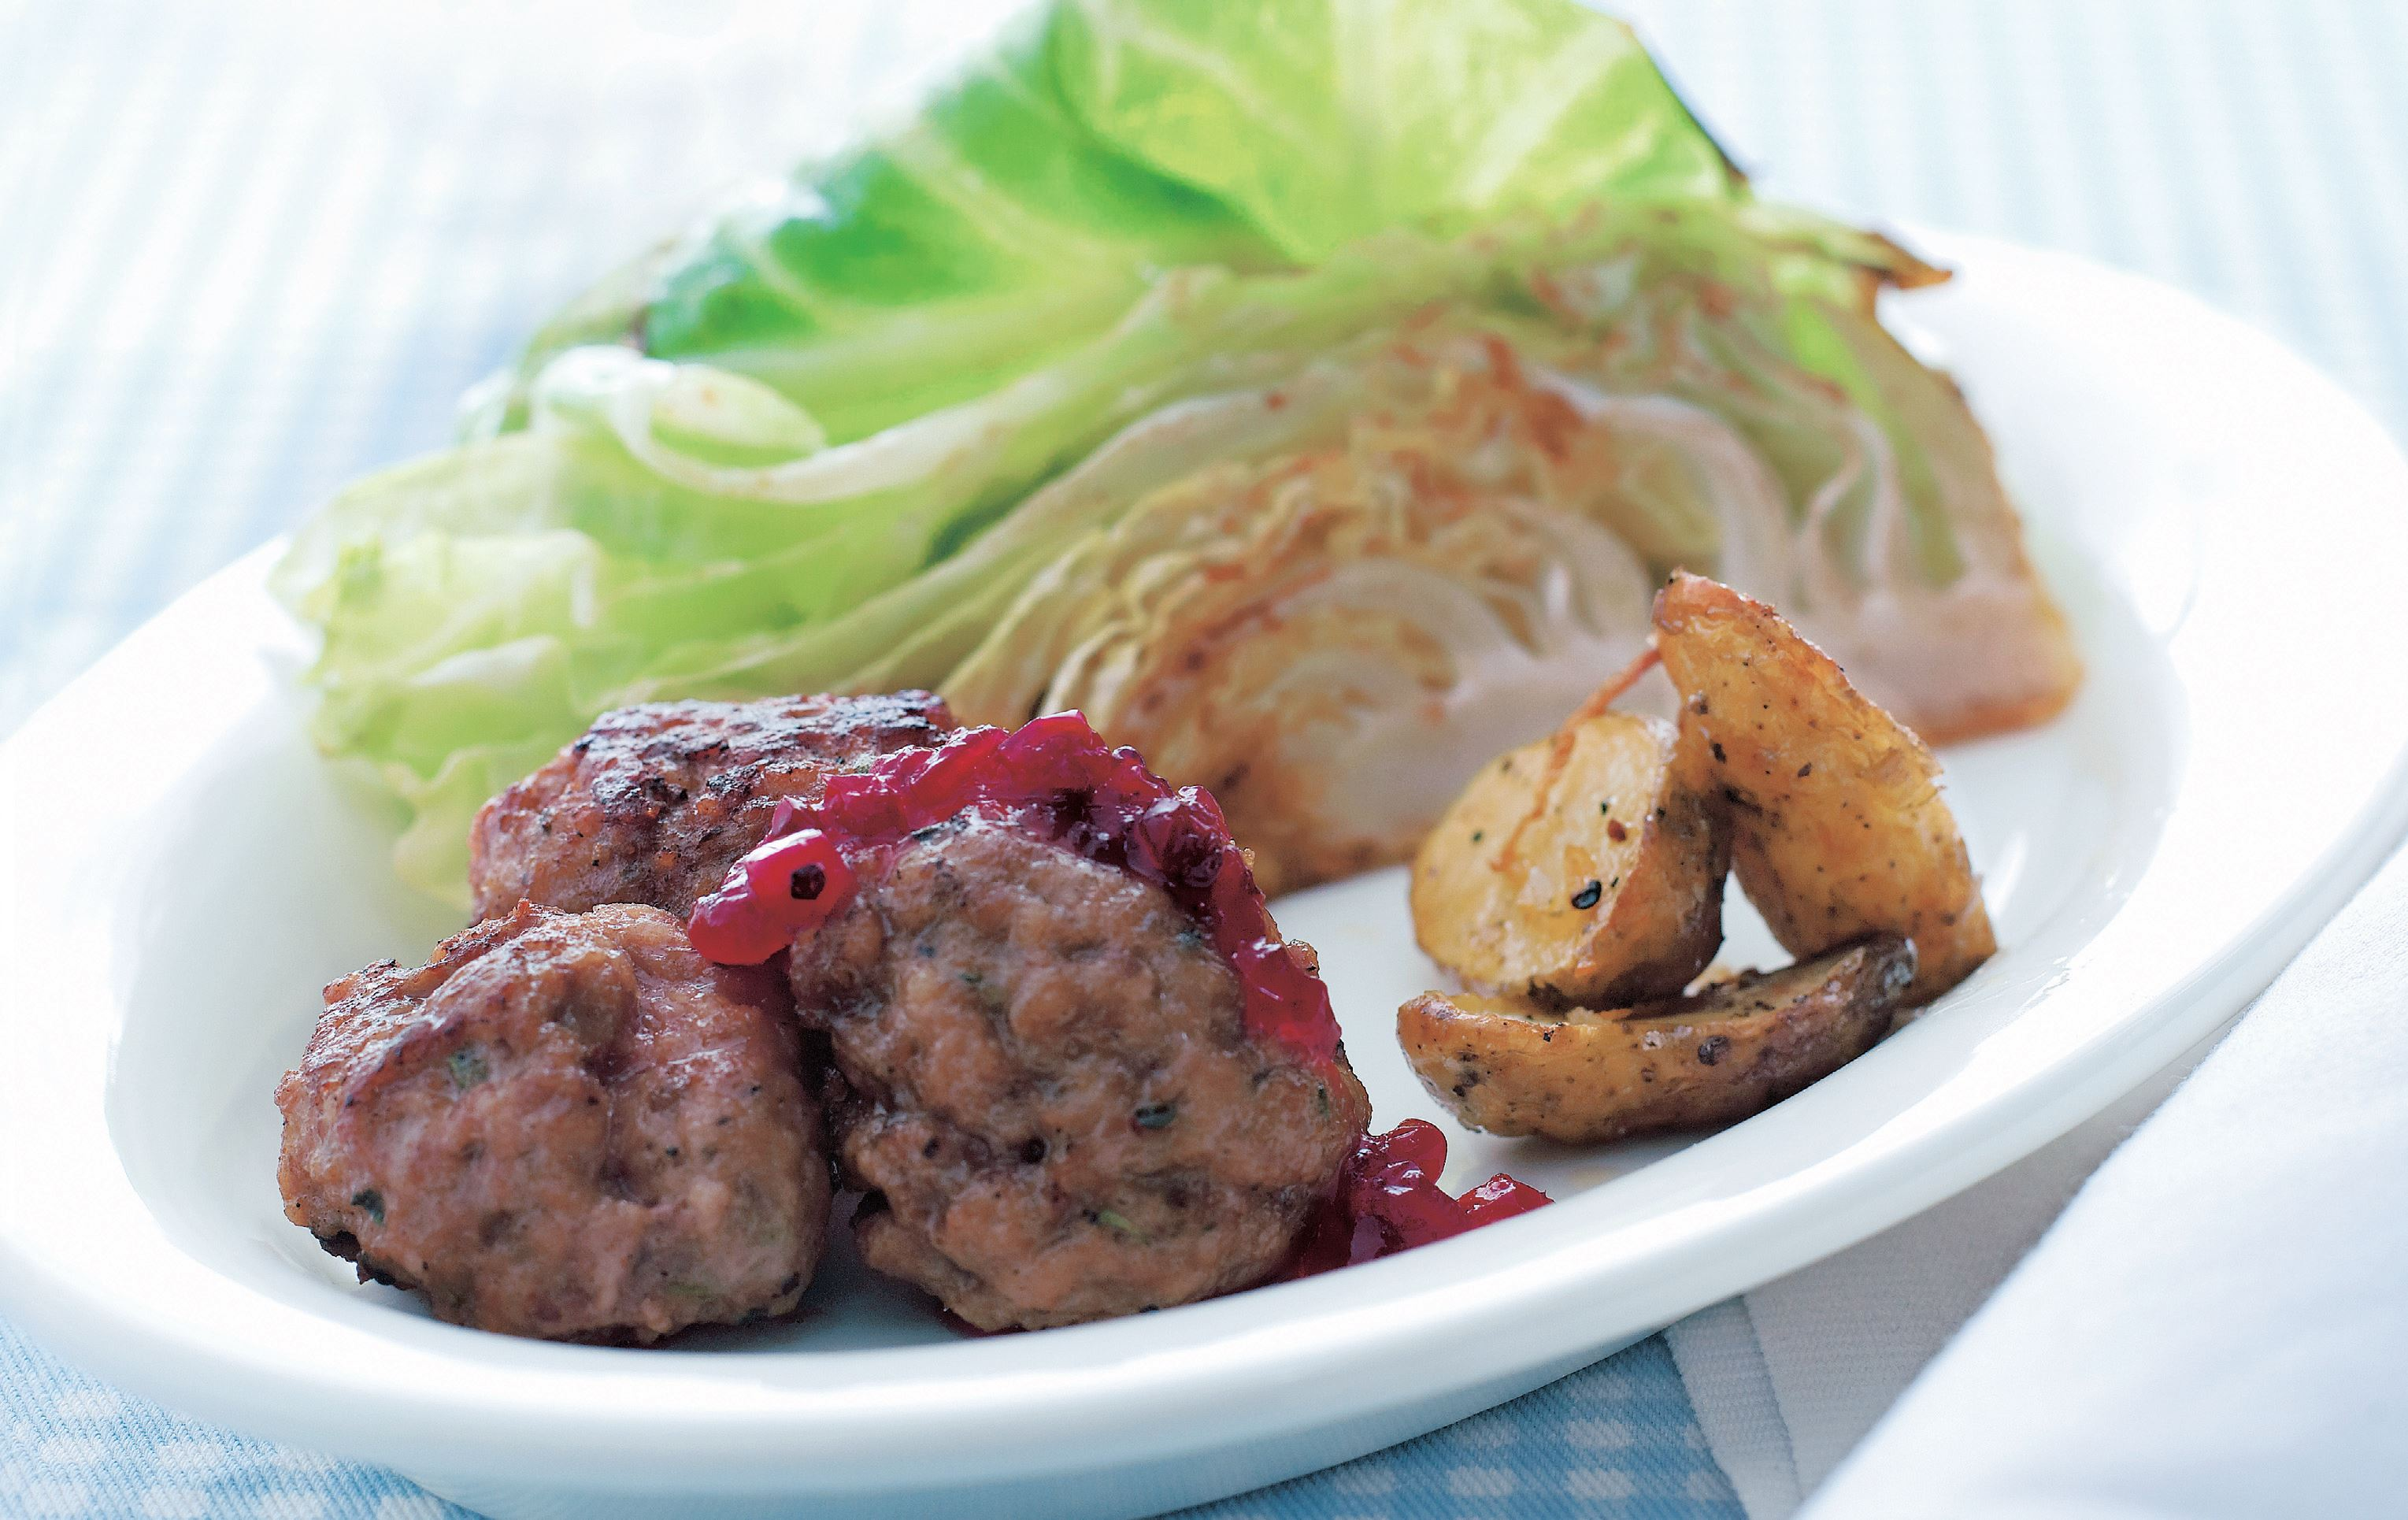 Meatballs with thyme, summer cabbage and lingonsylt